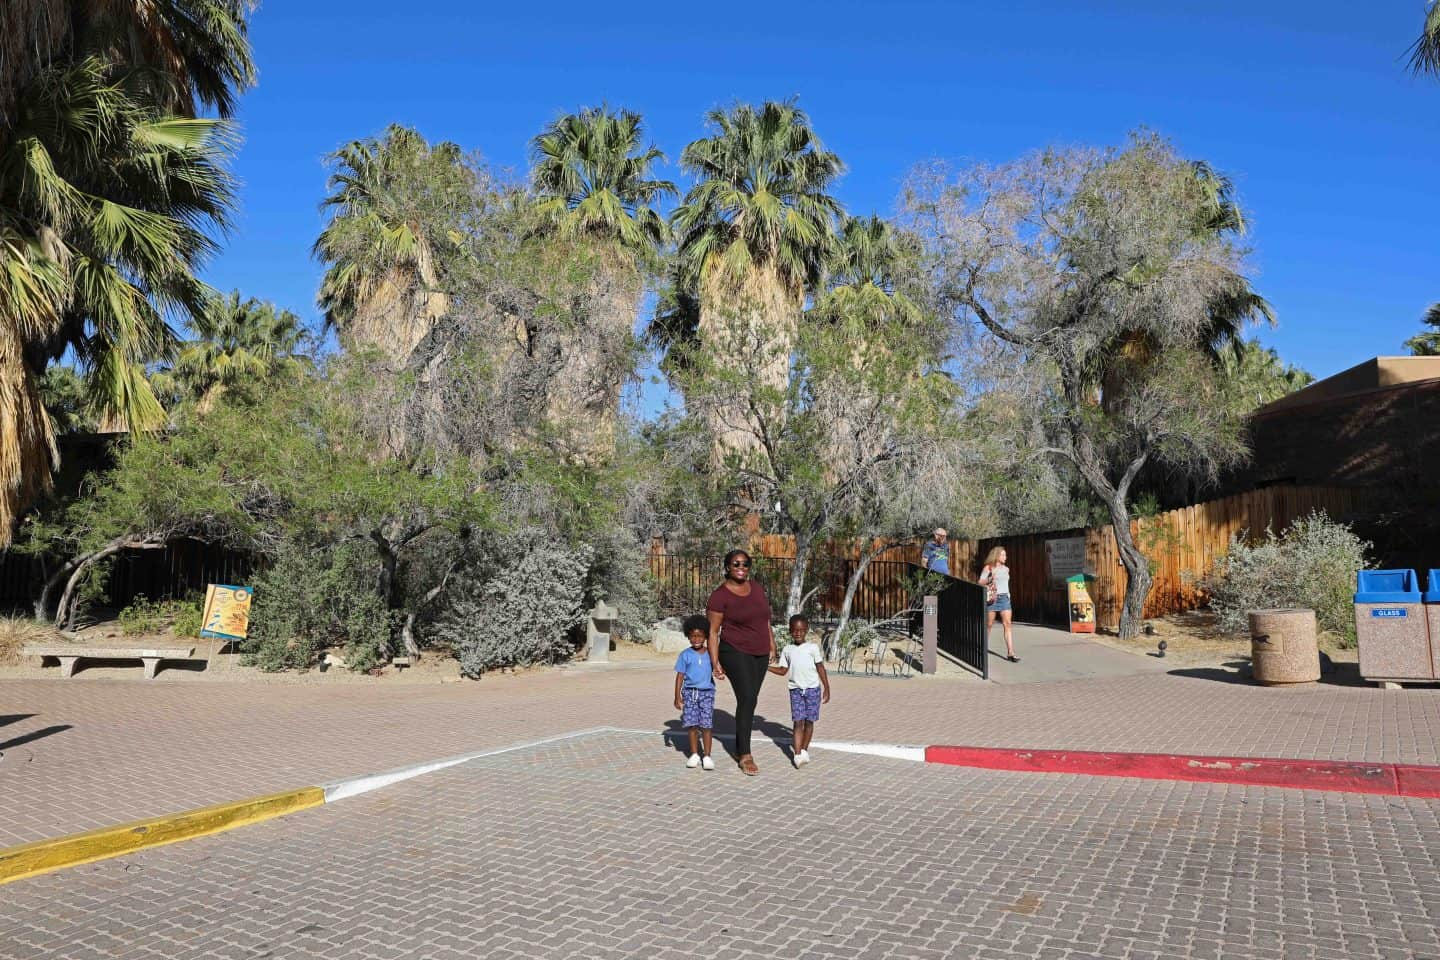 Visiting the The Living Desert Zoo and Gardens